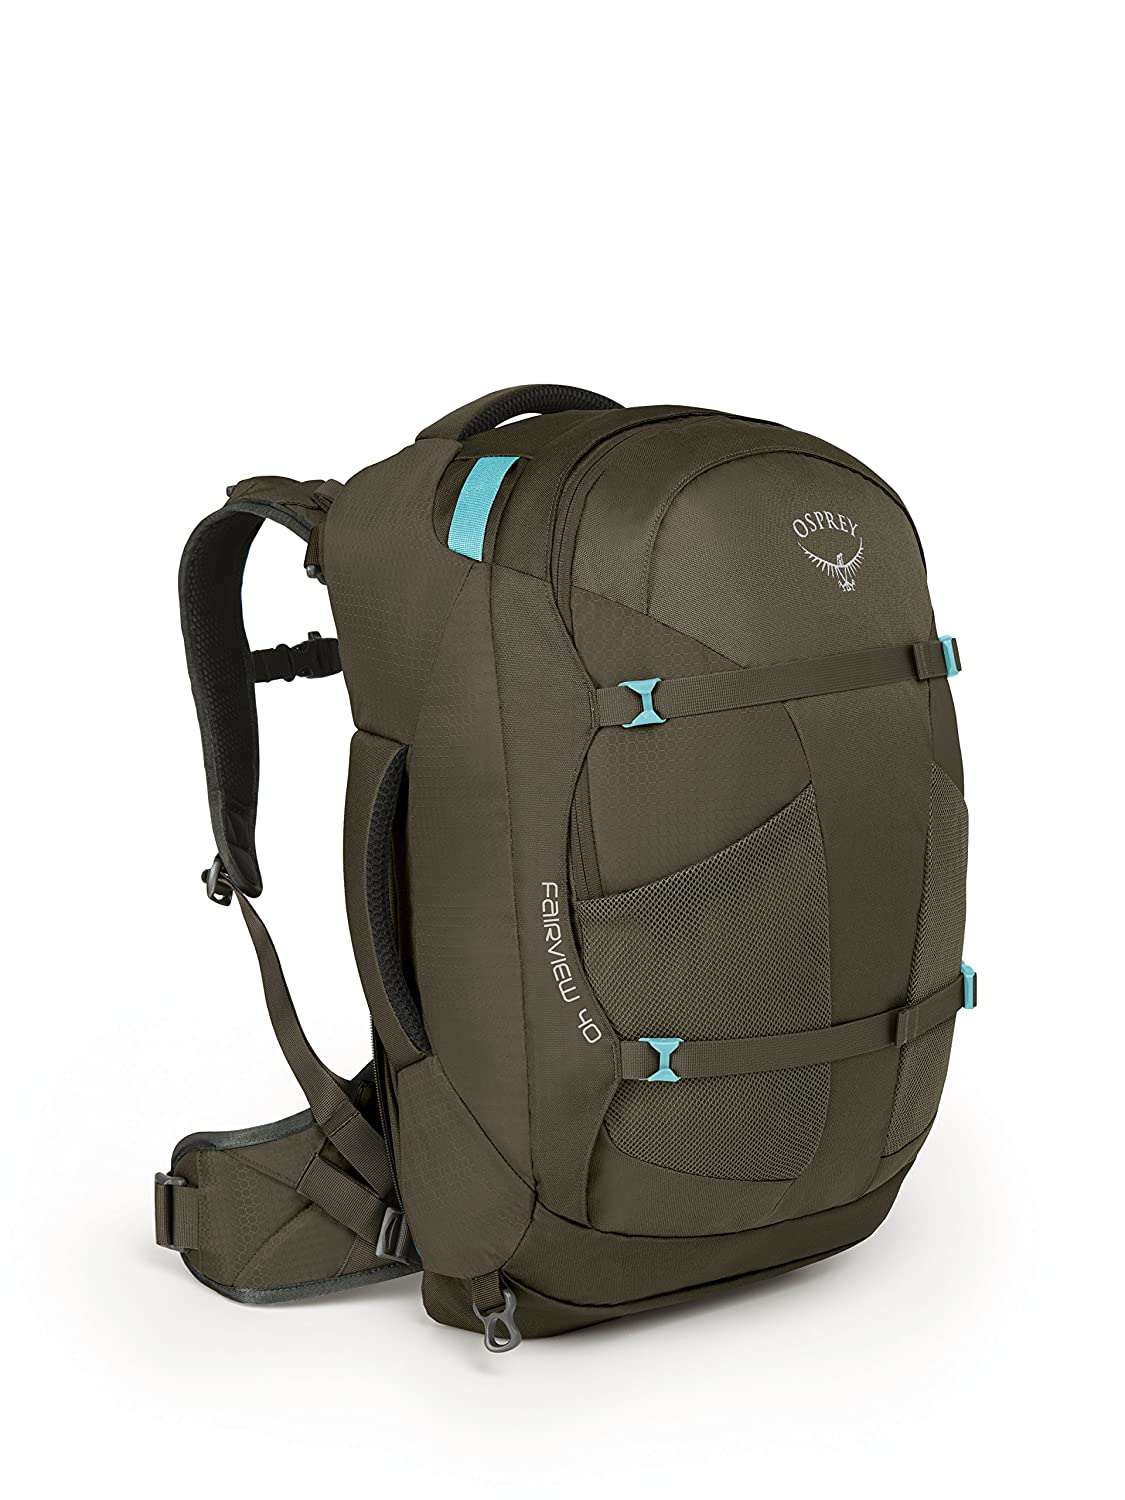 Osprey Packs Fairview 40 Travel Backpack 131